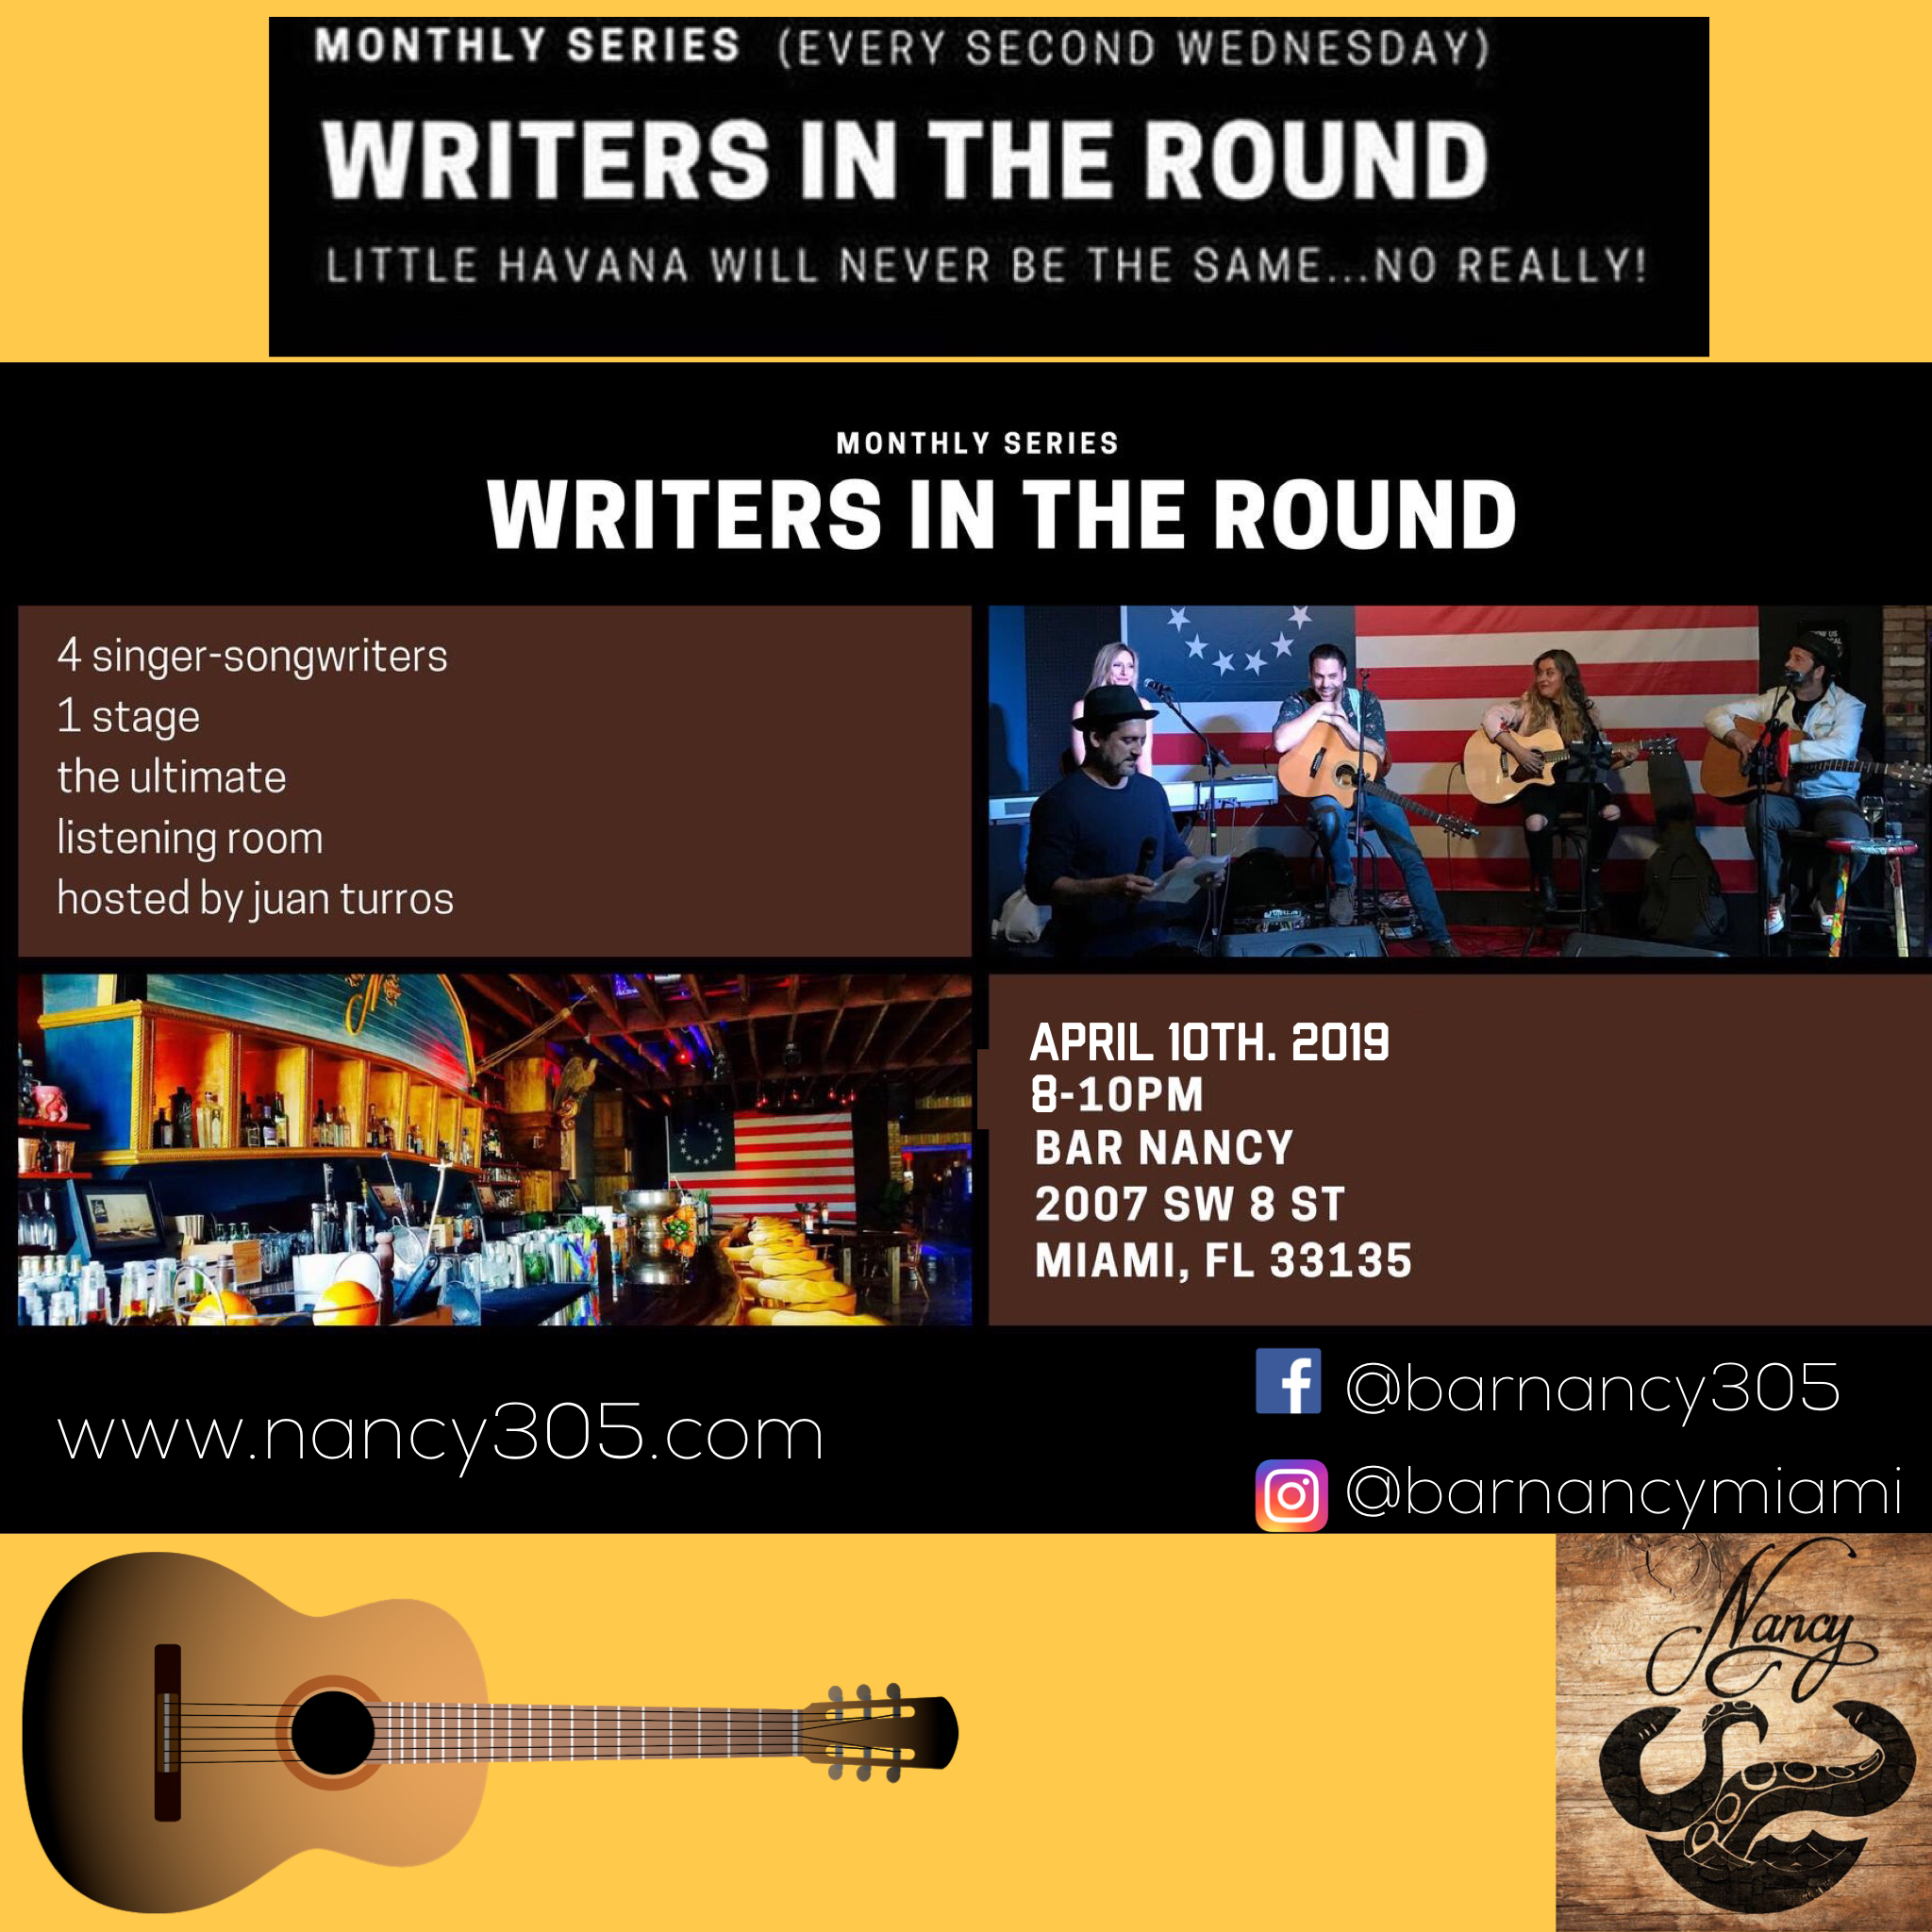 Writers in the Round! Hosted by Juan Turros! @ Bar Nancy - Wednesday, April 10, at 8 PM